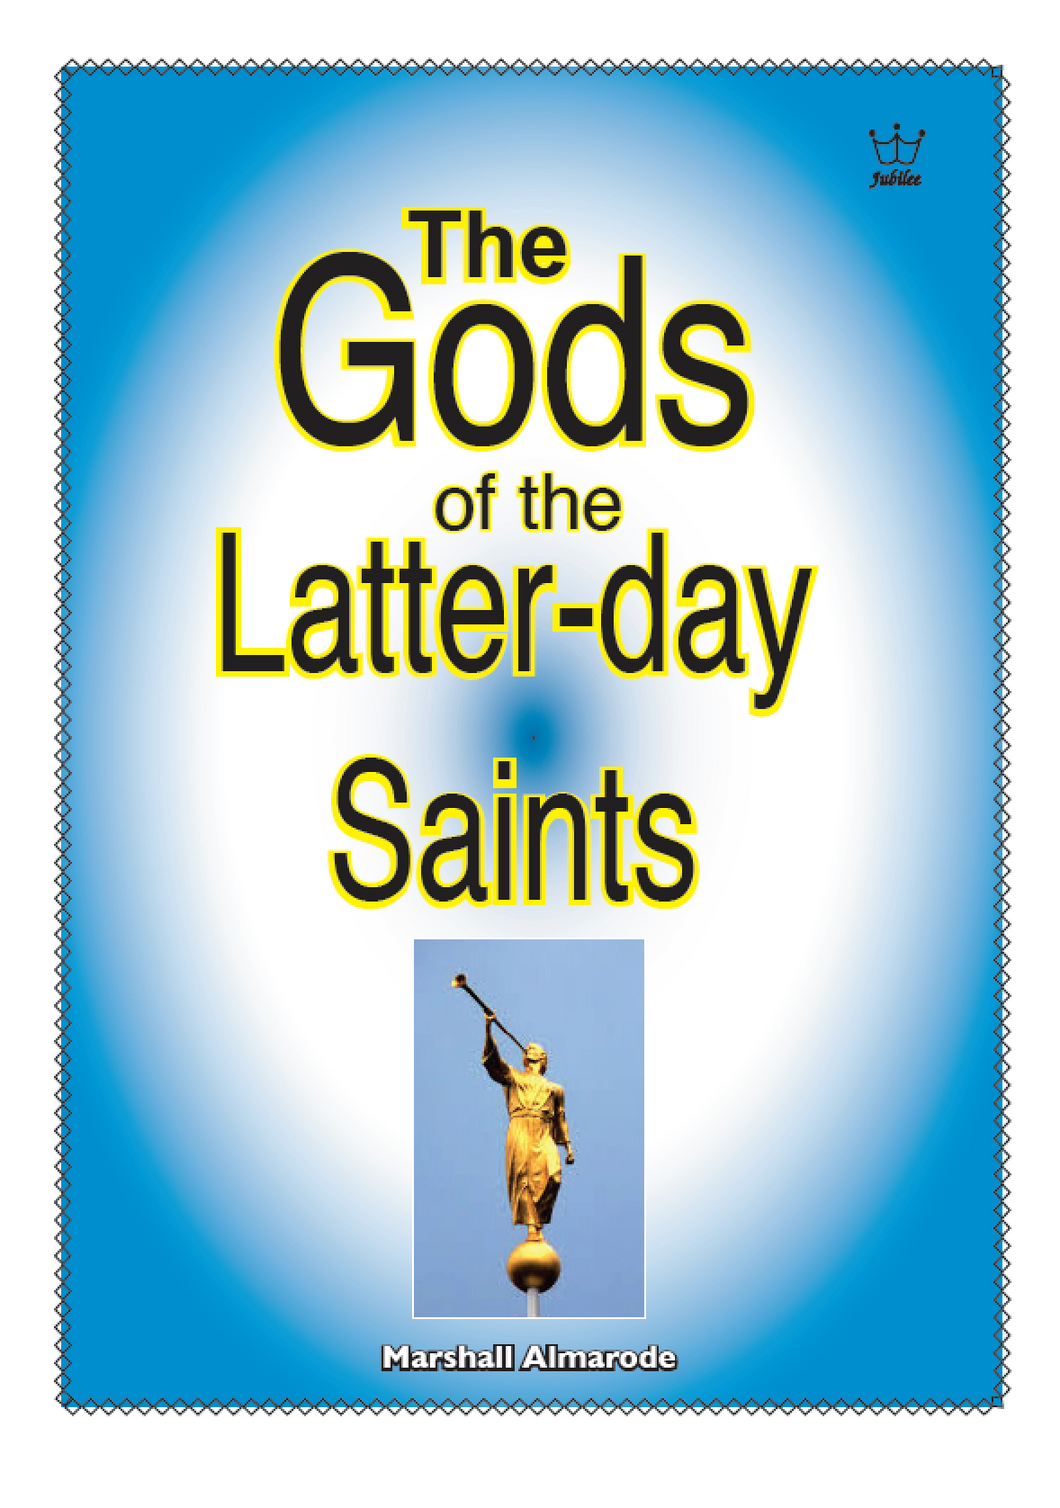 The God/s of the Latter-day Saints